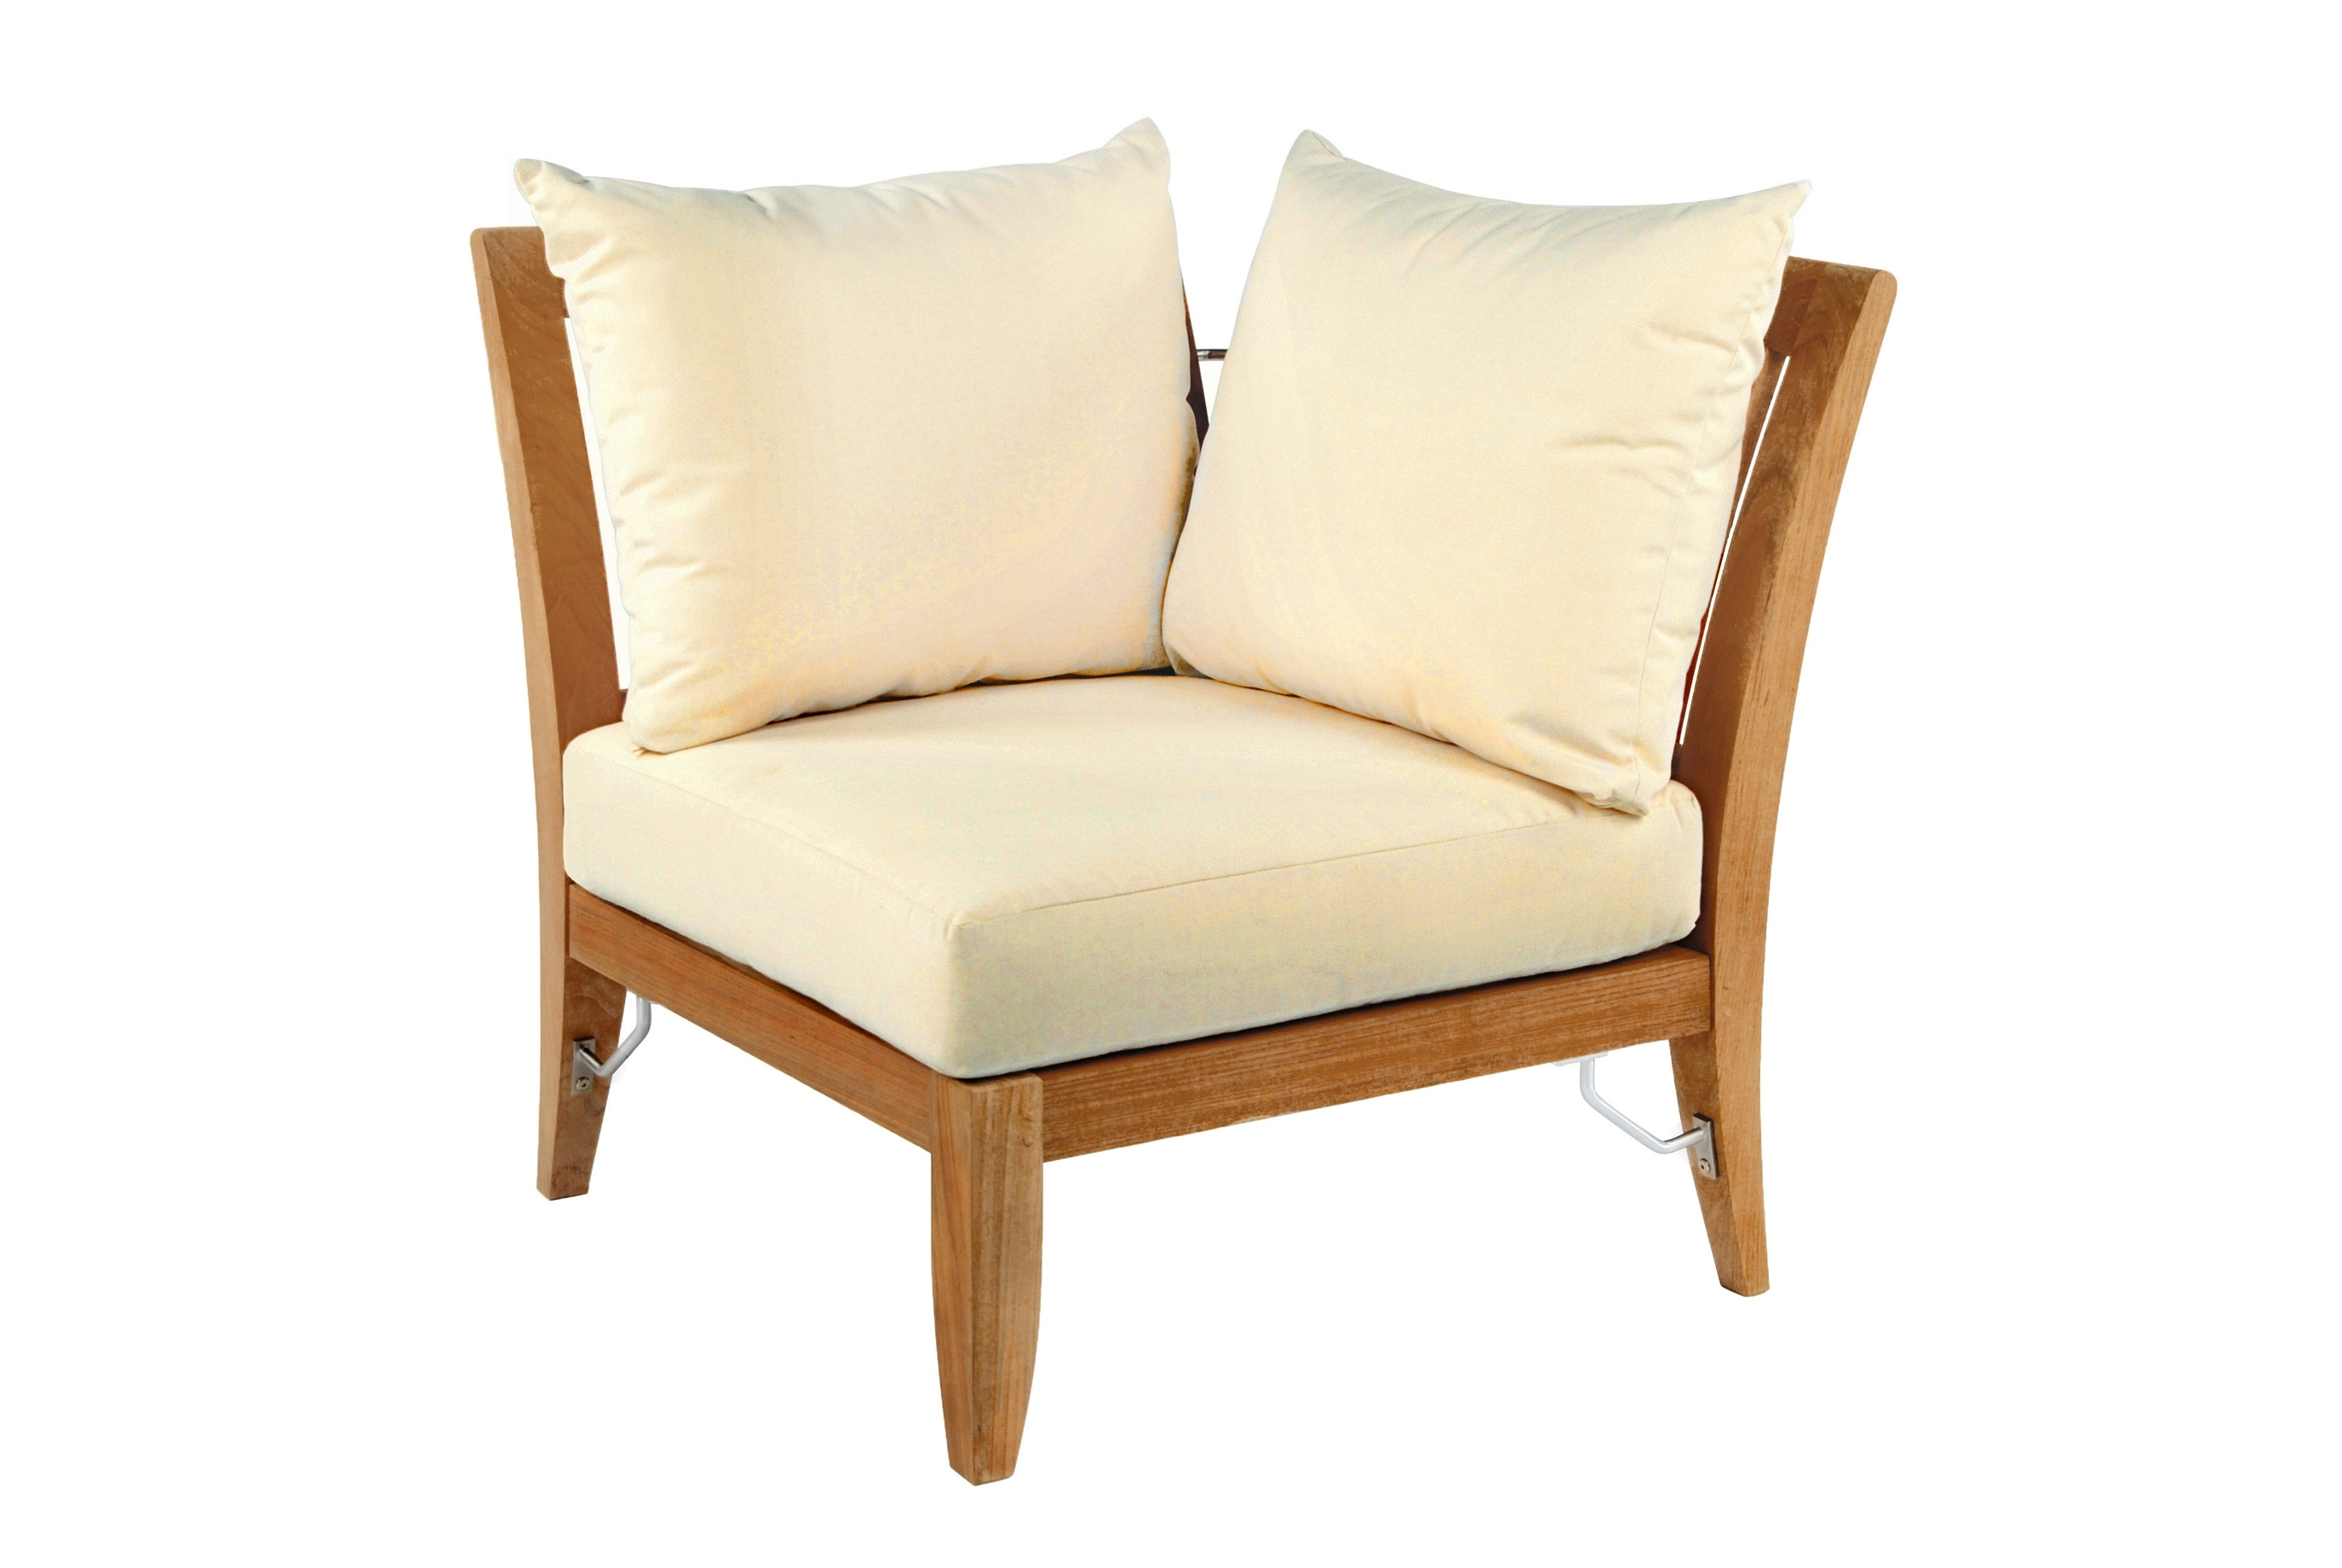 Kingsley-Bate Ipanema Teak Sectional-Corner Chair